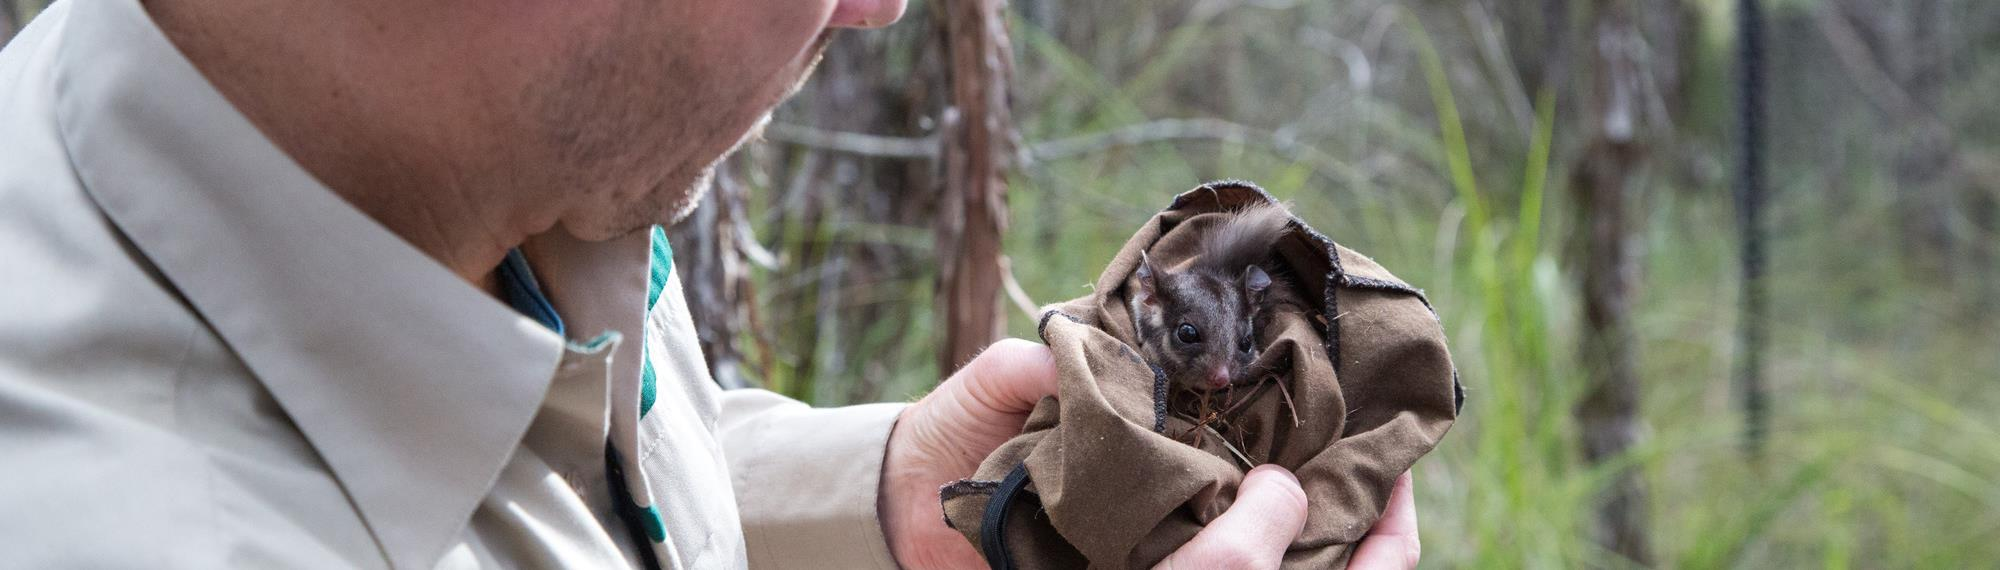 Man looking at a young Leadbeater's Possum in a sack.